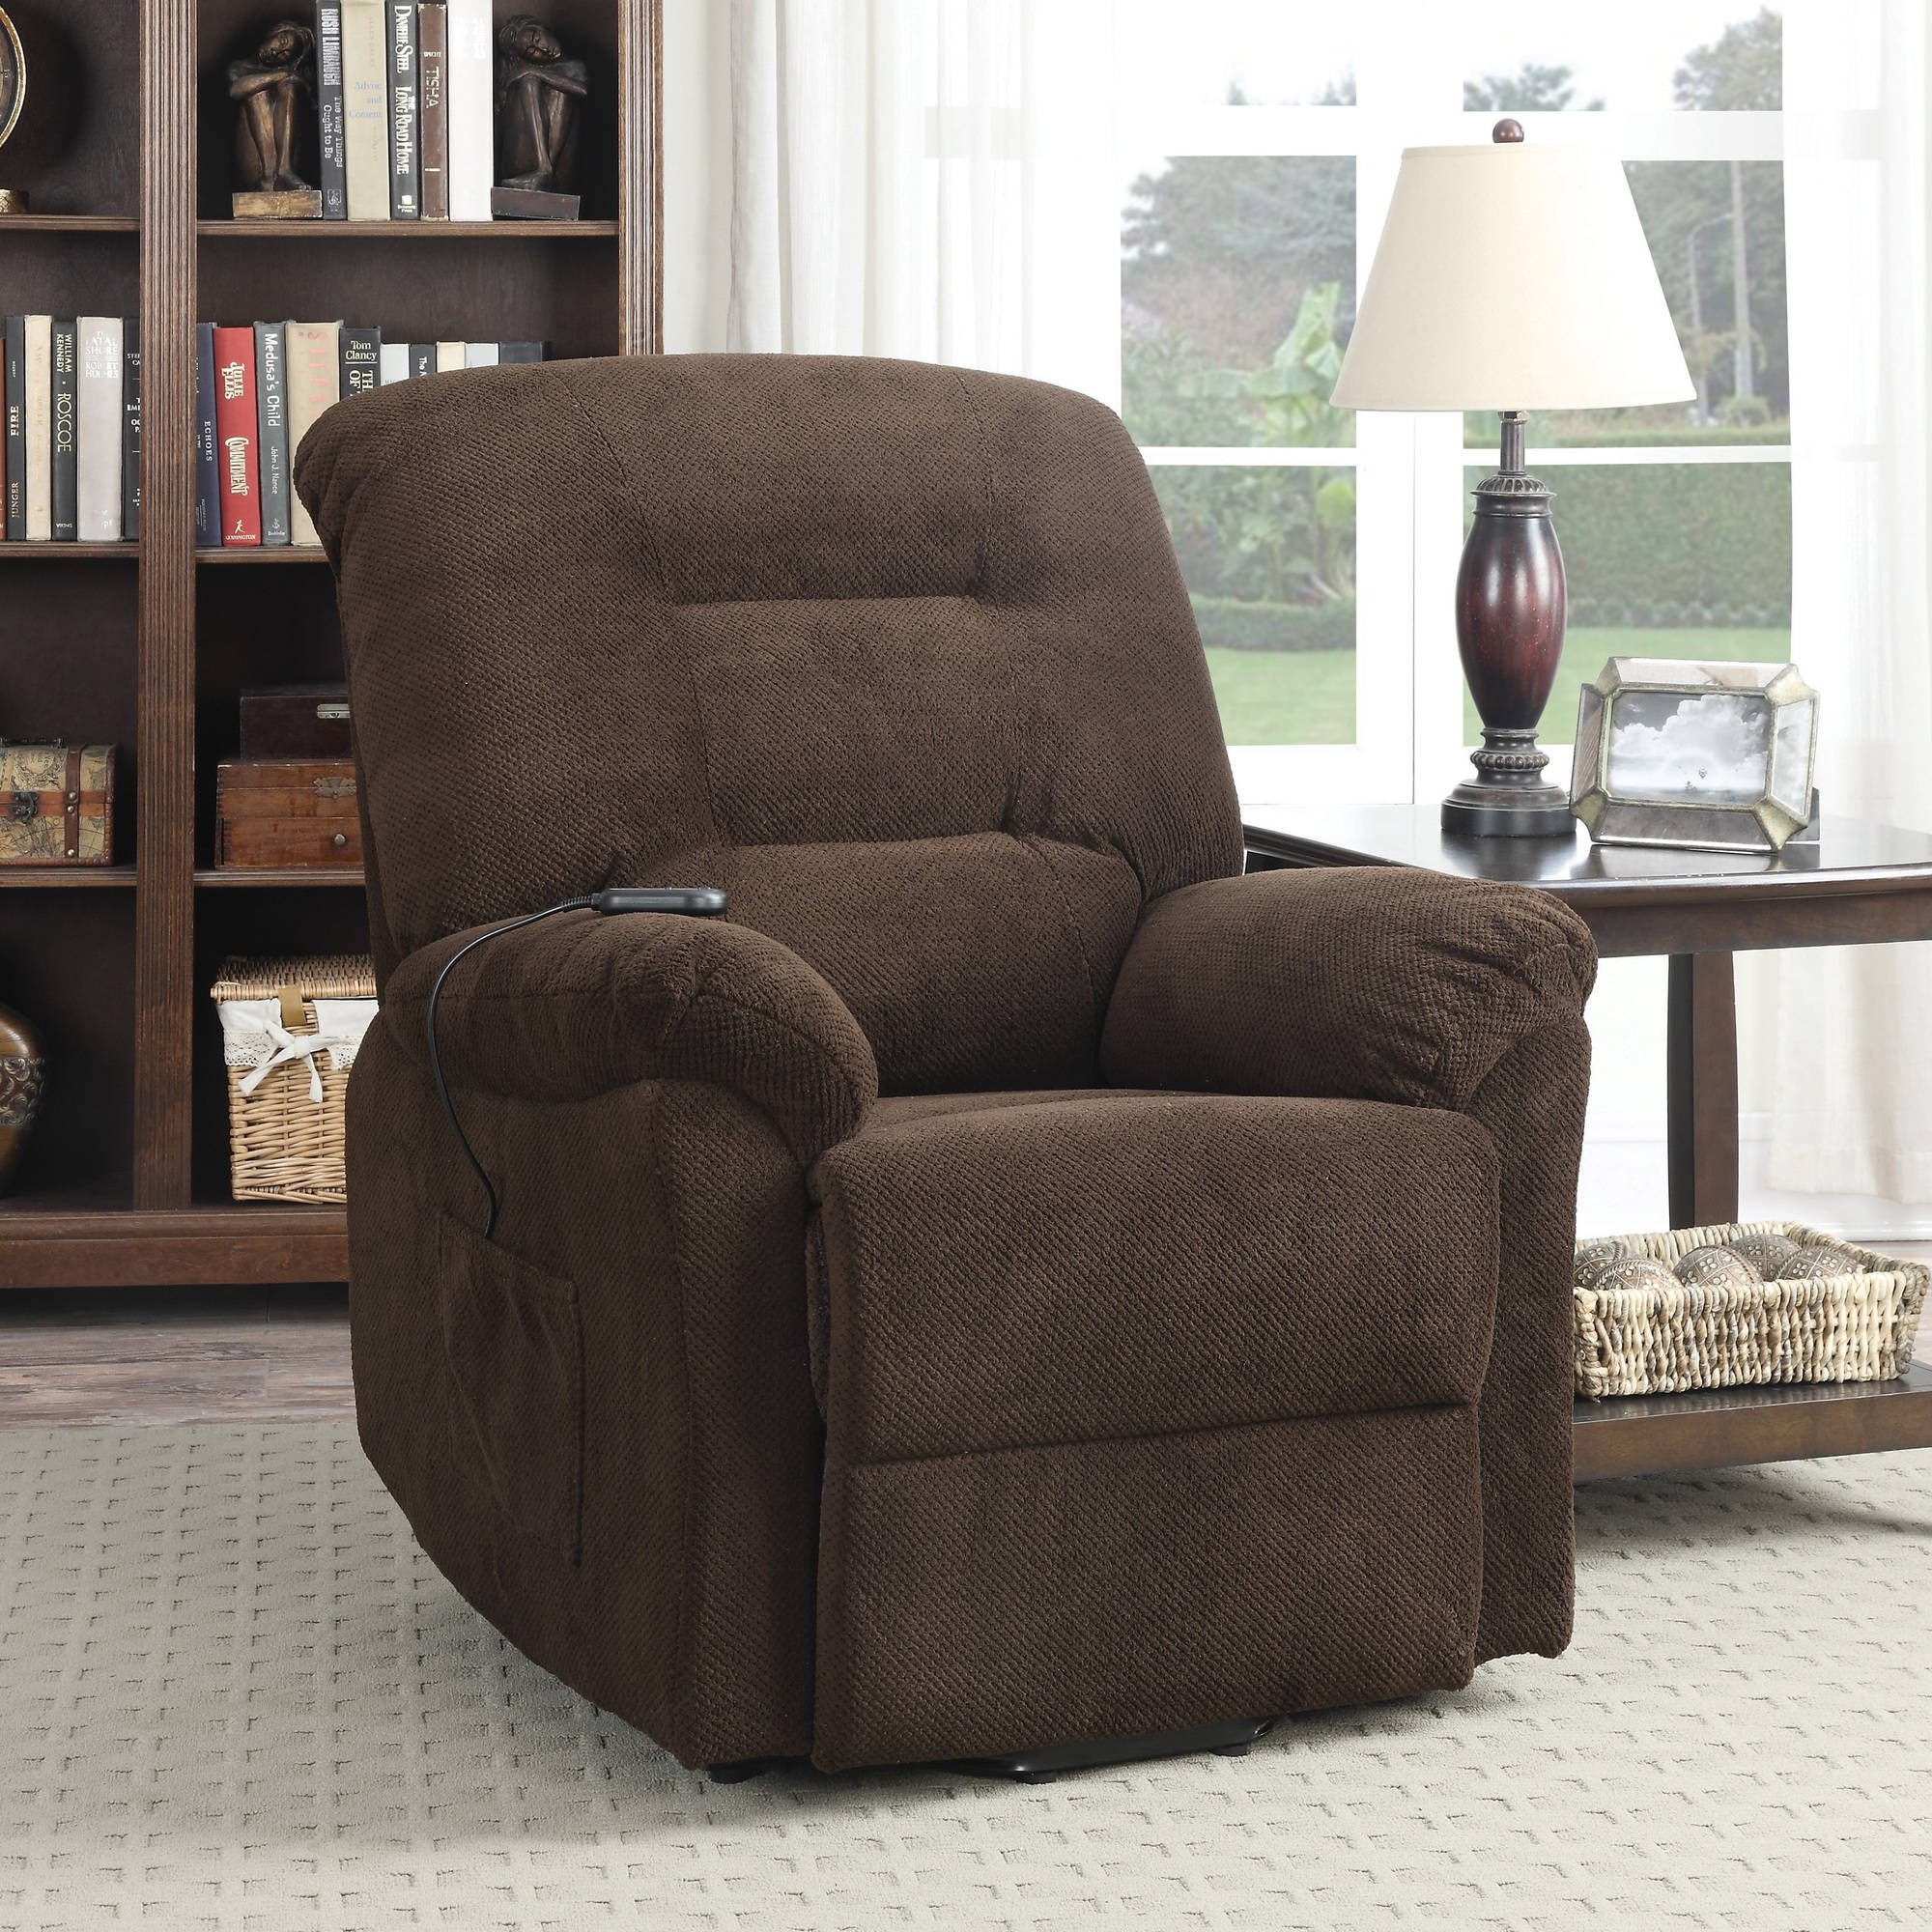 Lift Recliners 250 300 Pride Lift Chair Bed Ashley Ernestine